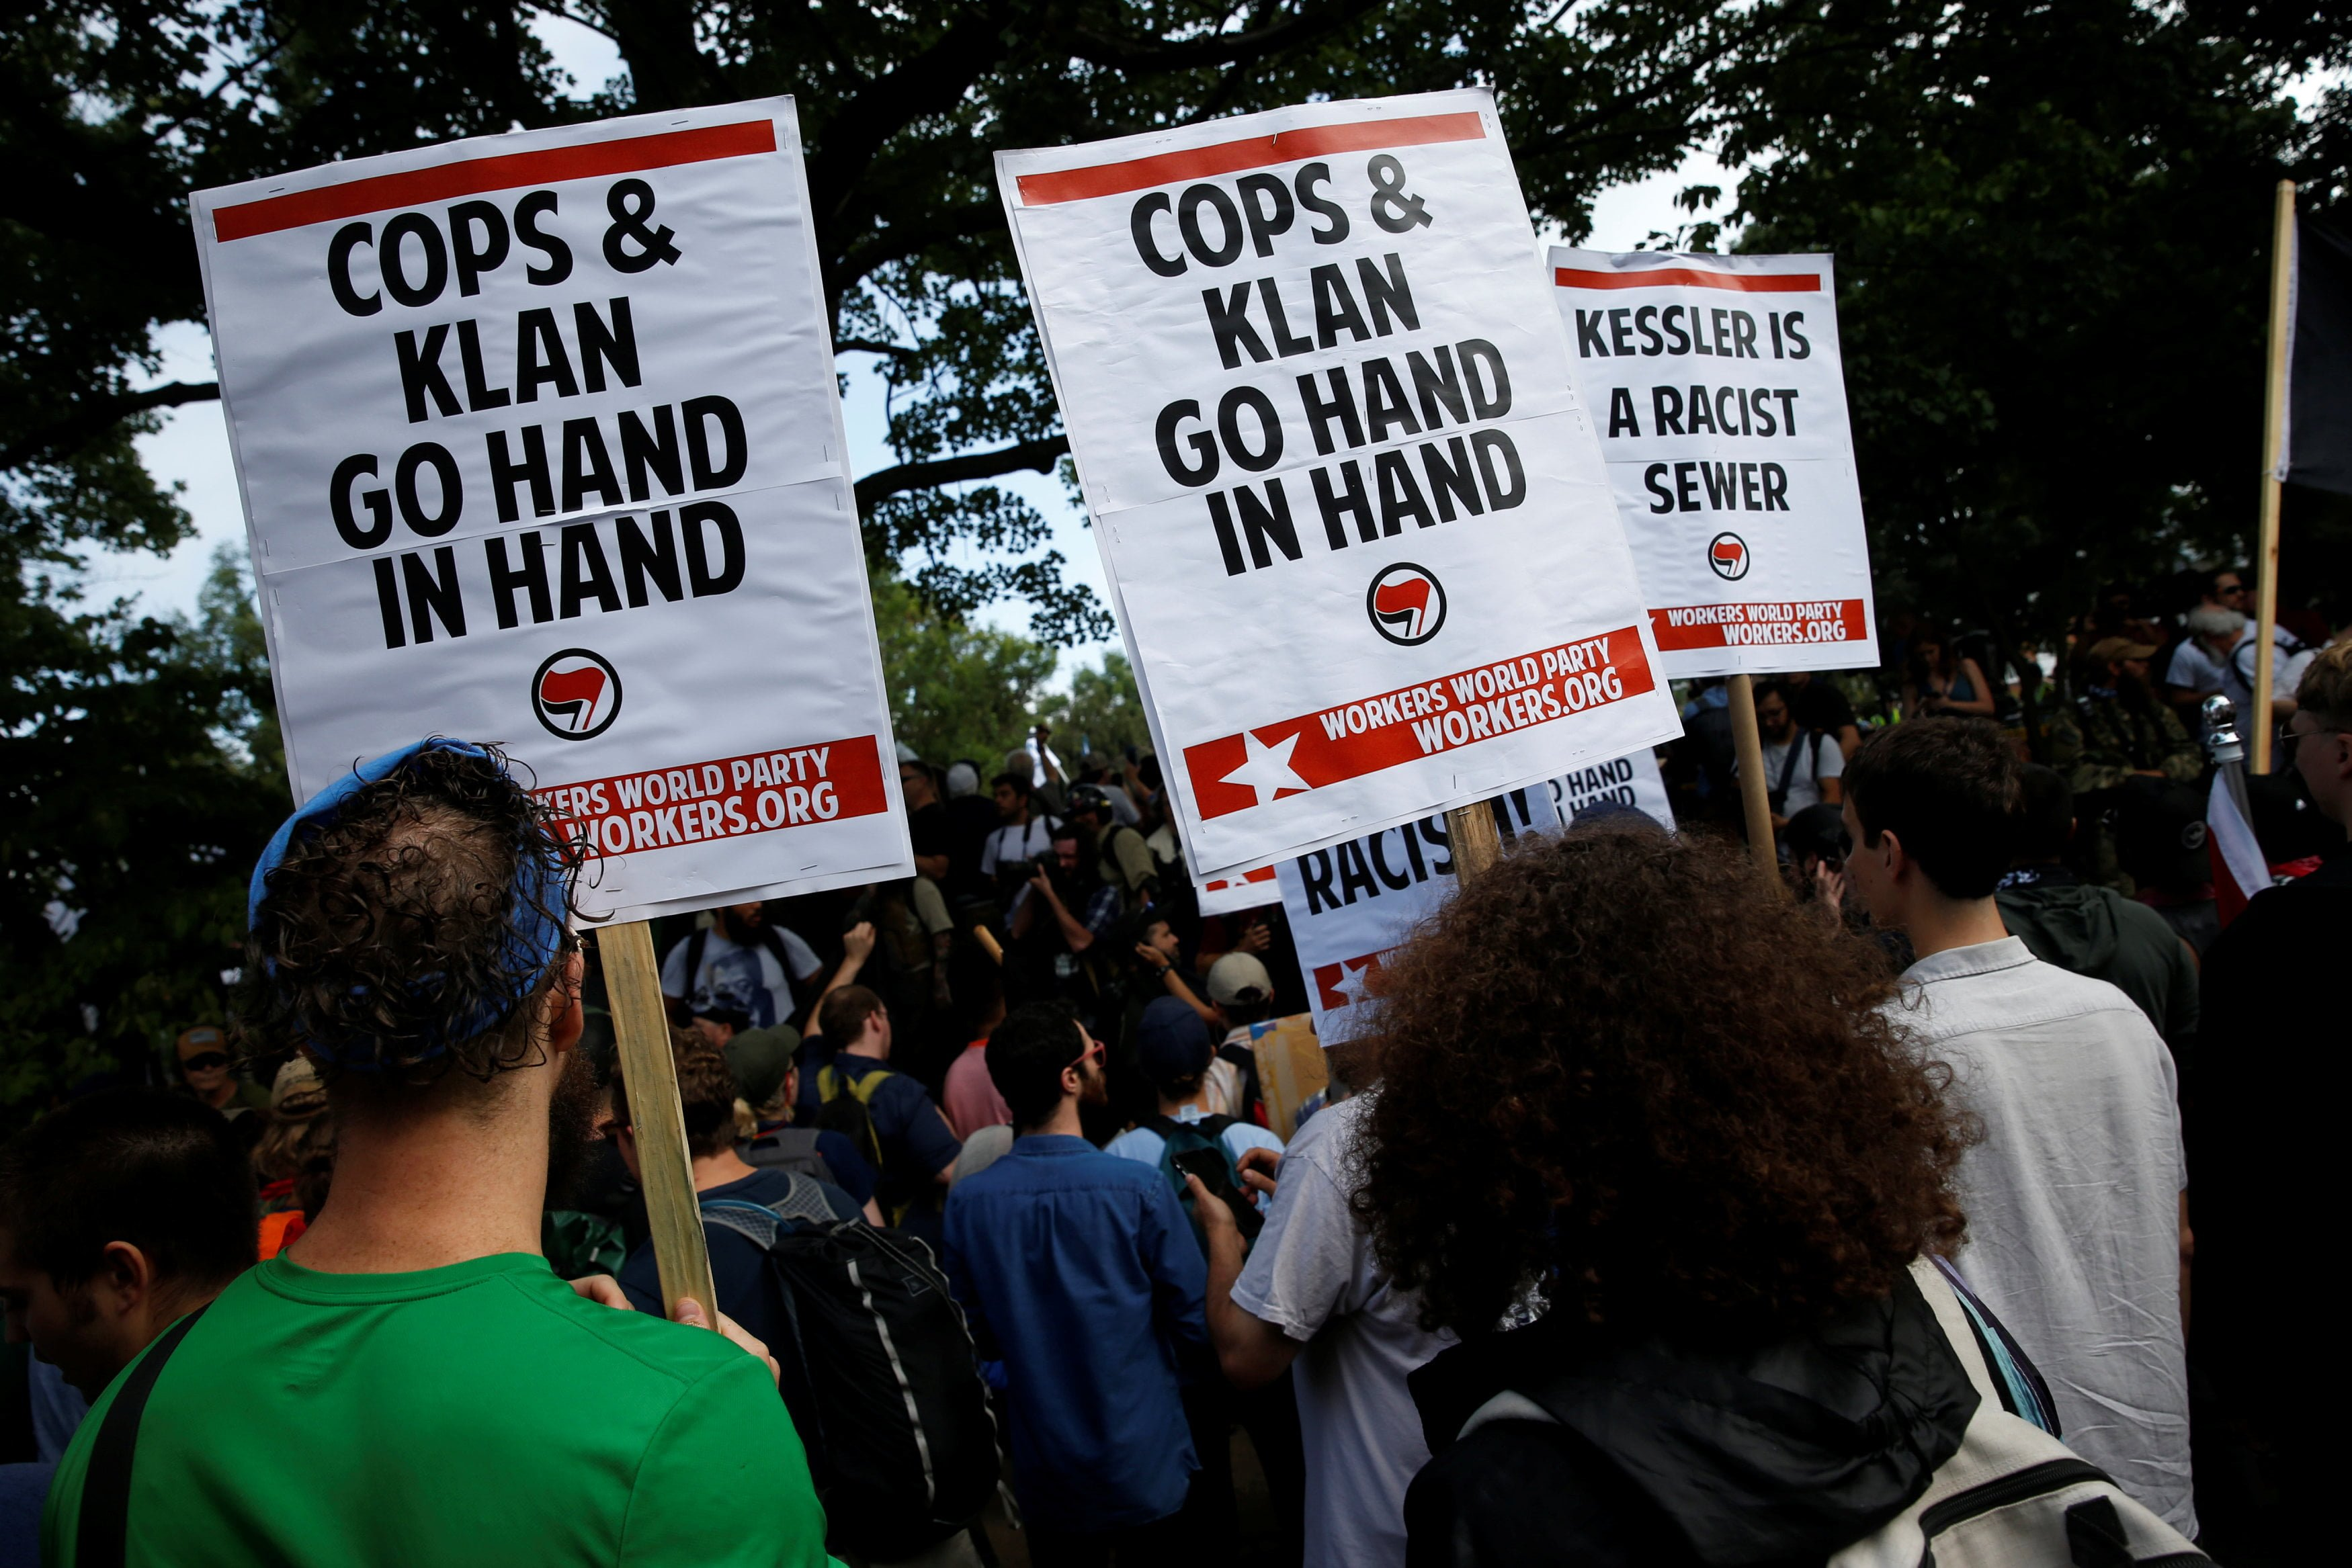 Counter demonstrators carry signs protesting white supremacists and police at a rally in Charlottesville, Virginia, U.S., August 12, 2017. REUTERS/Joshua Roberts